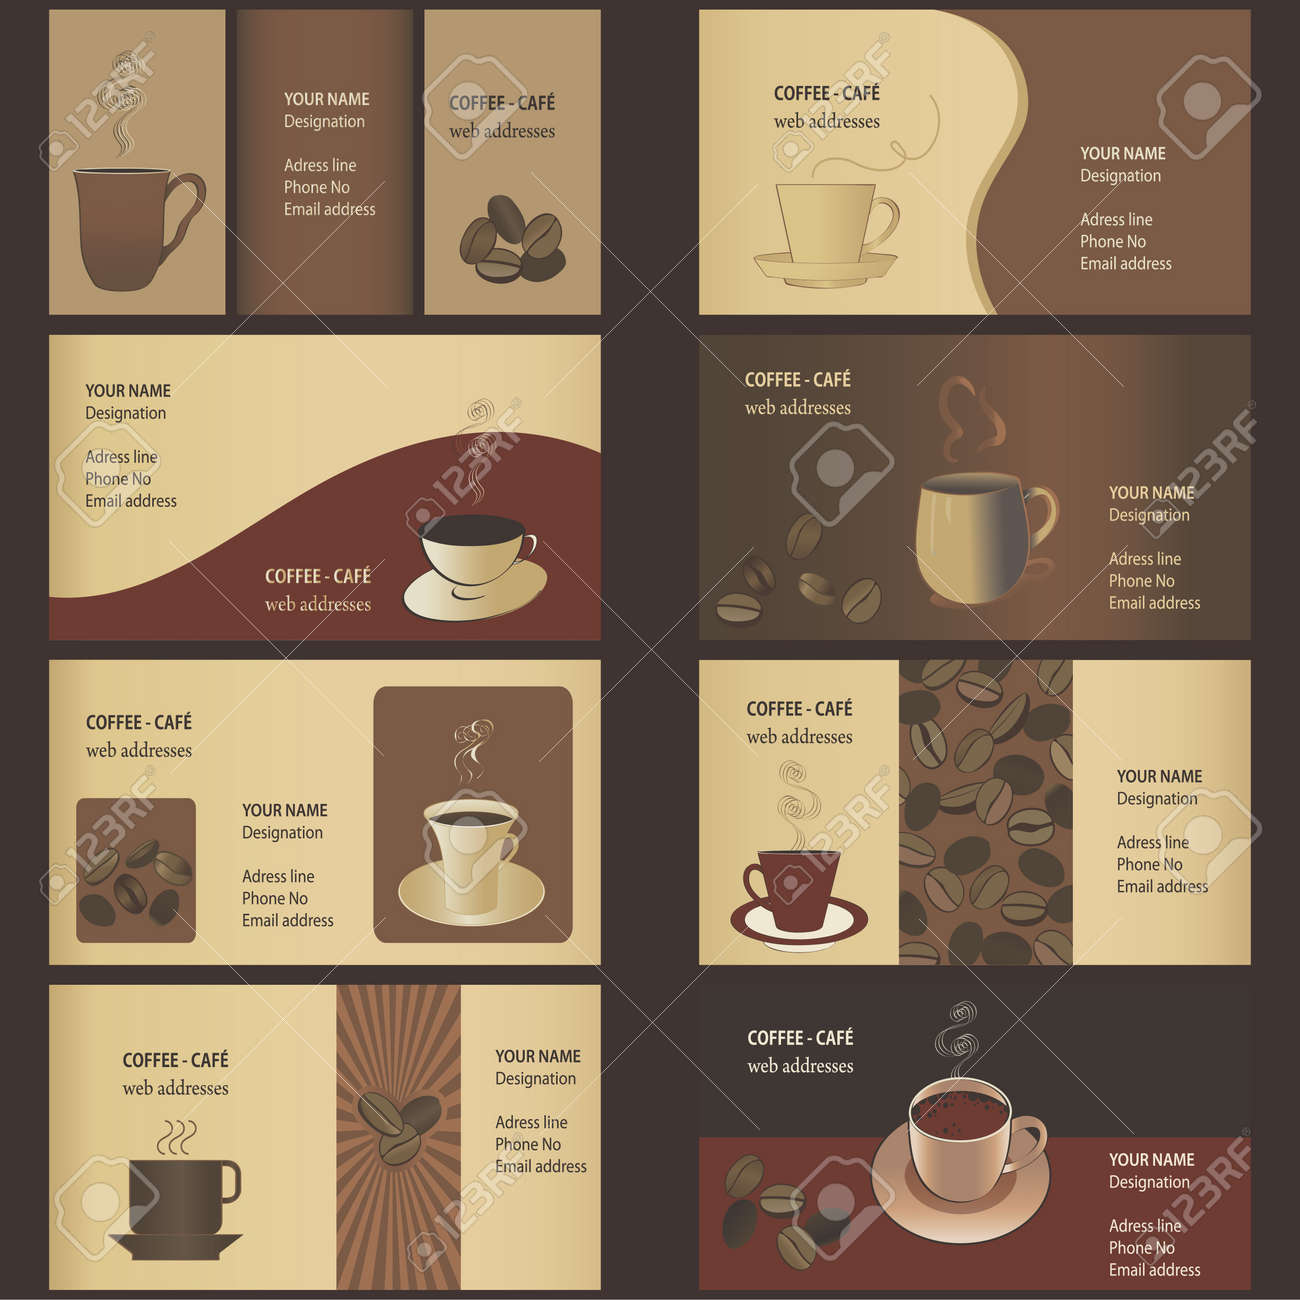 51641 coffee business stock vector illustration and royalty free